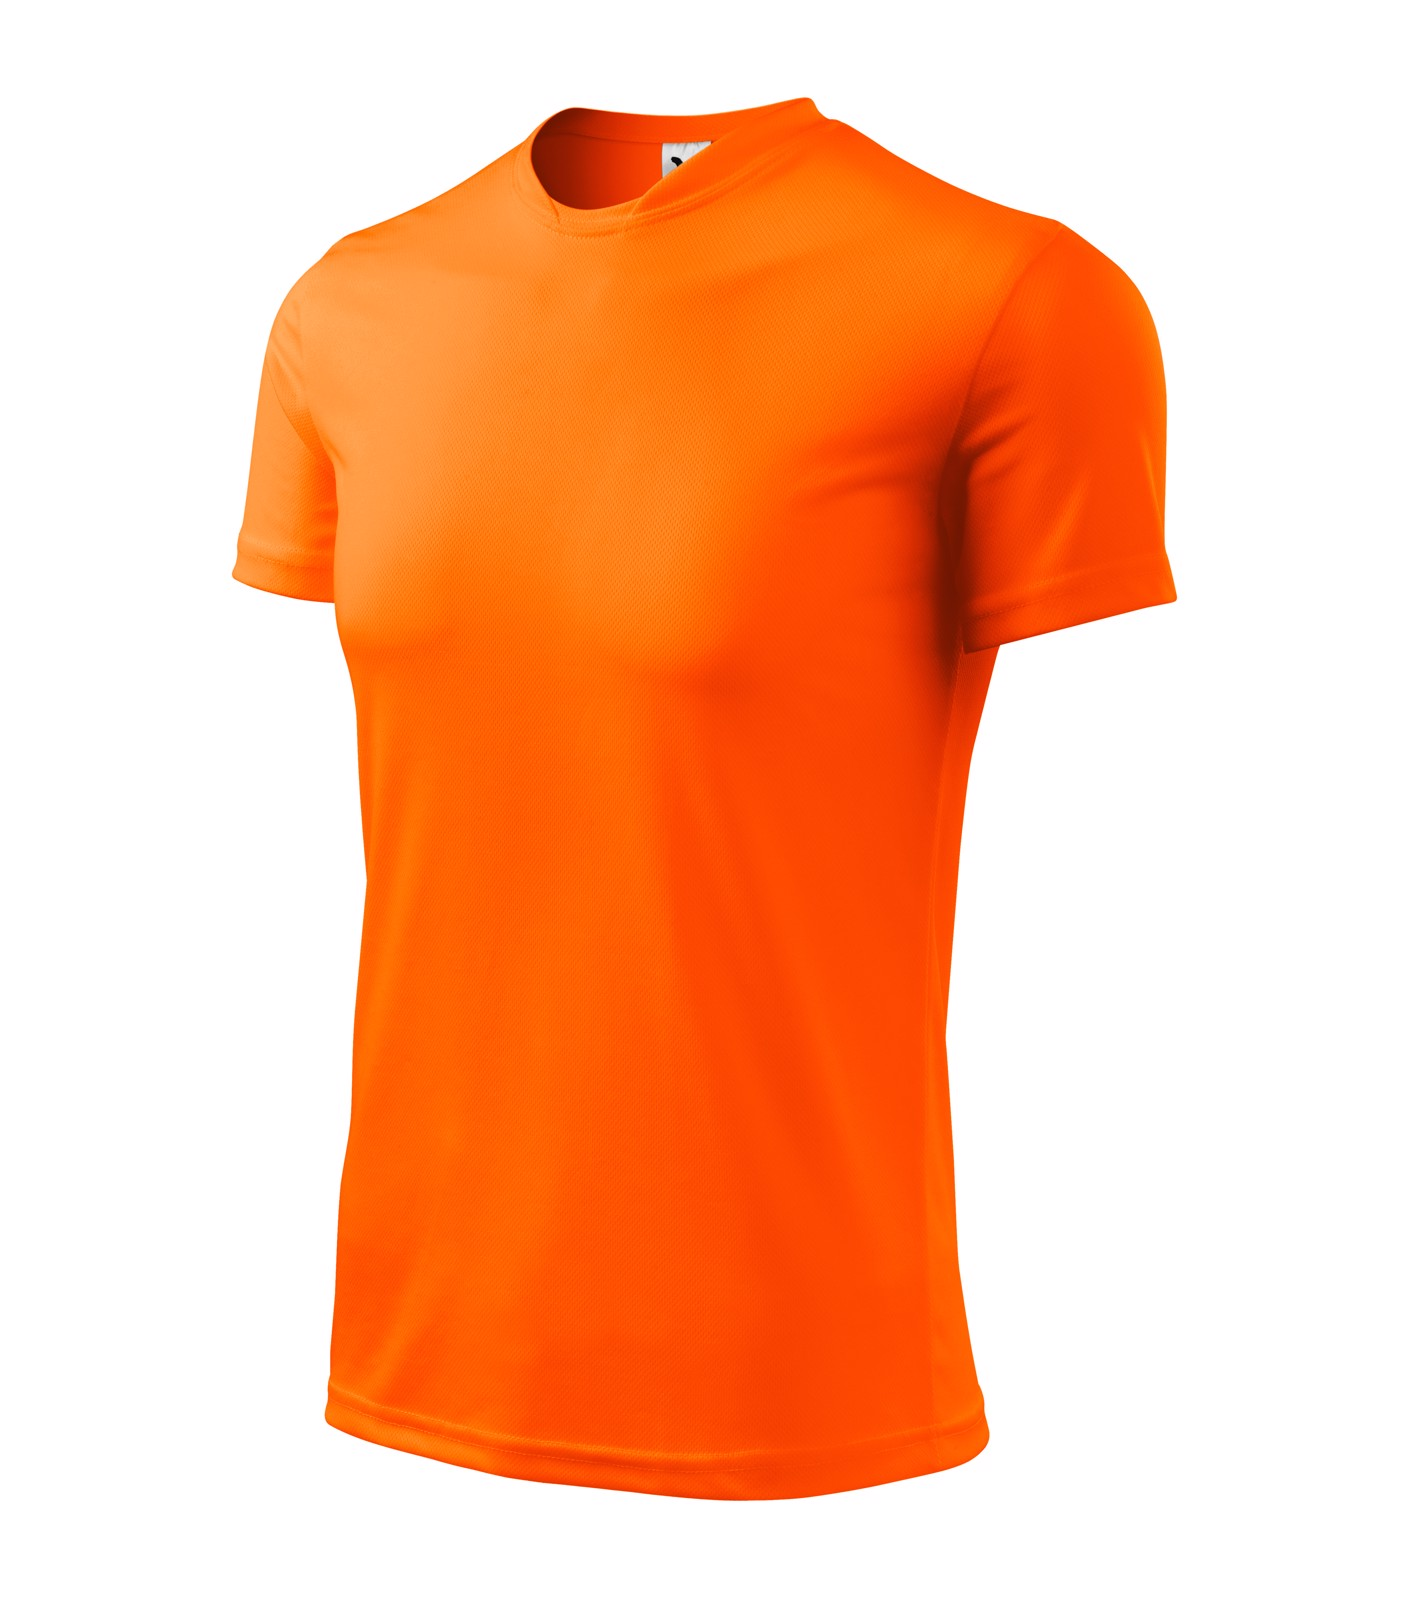 T-shirt Gents Malfini Fantasy - Neon Orange / M